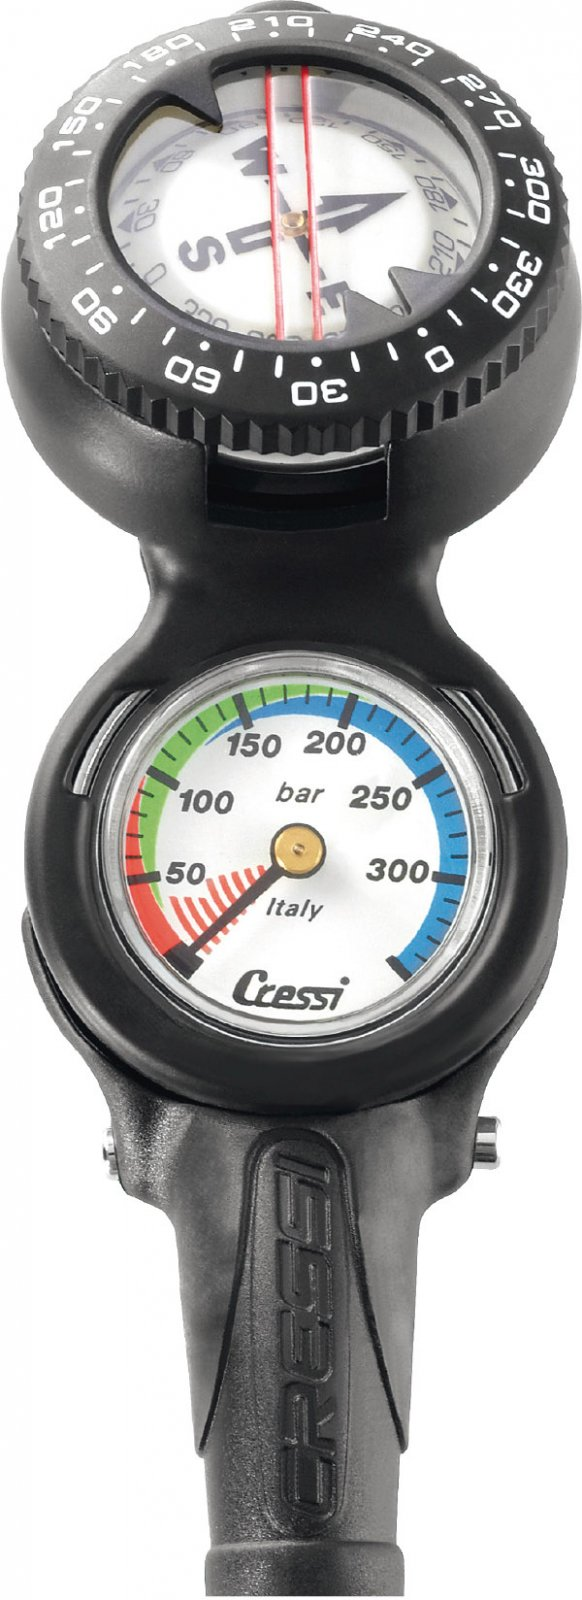 Cressi Console CP2 Compass + SPG Bar